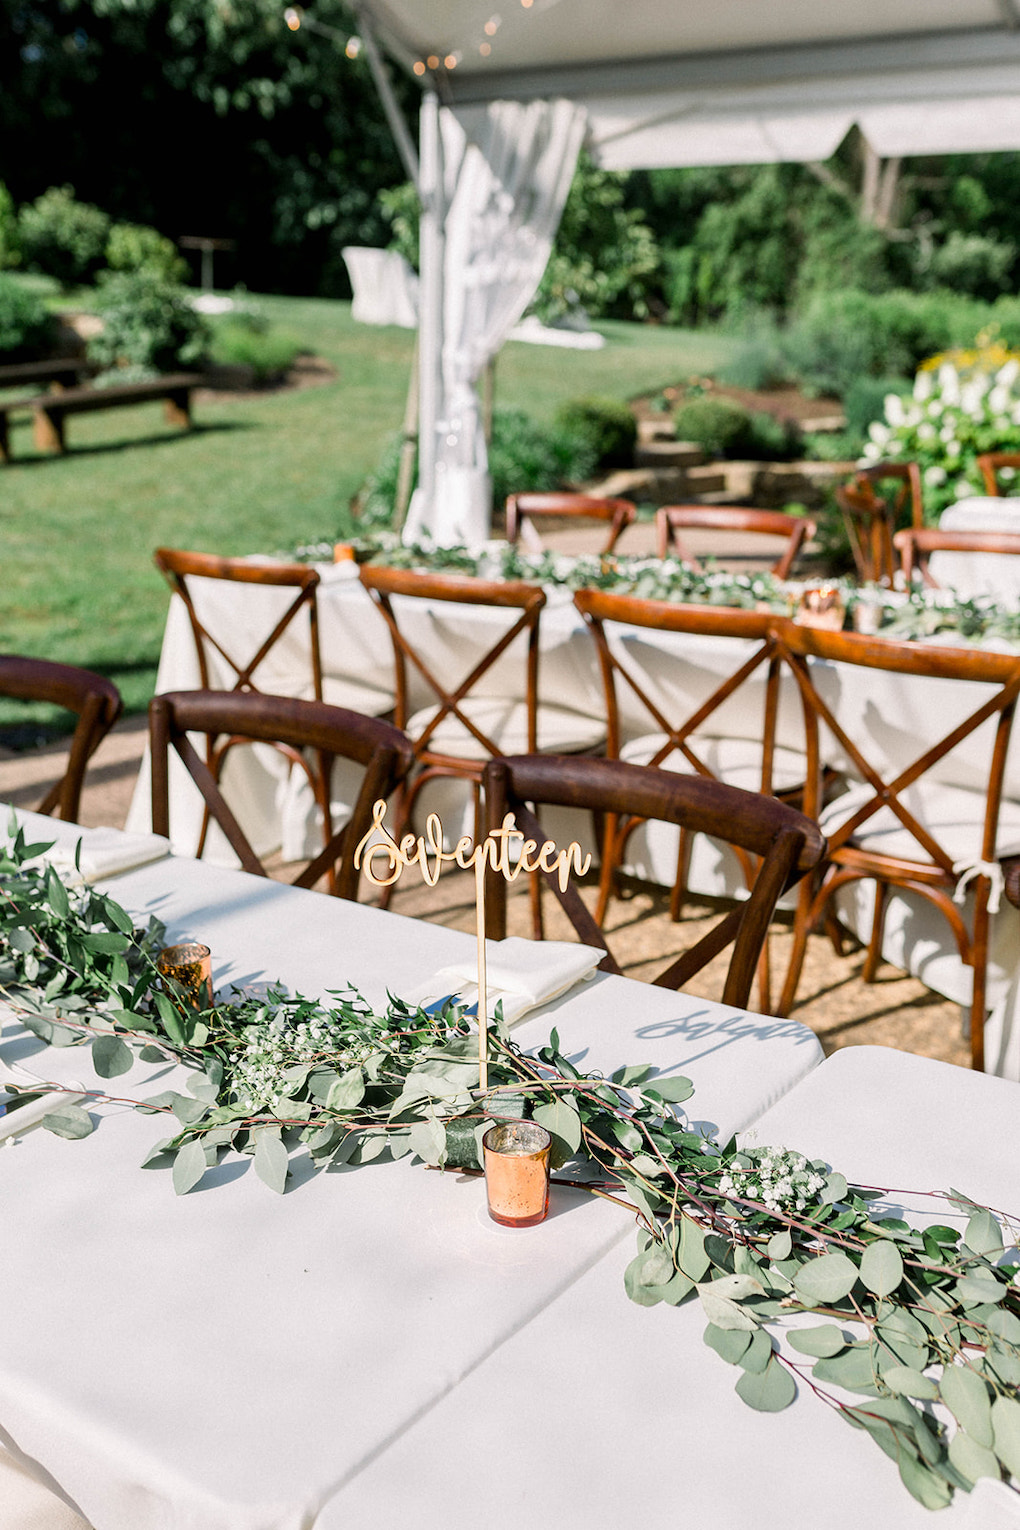 Simple Greenery Wedding Decor: Pittsburgh Botanic Garden wedding planned by Exhale Events. See more wedding inspiration at exhale-events.com!